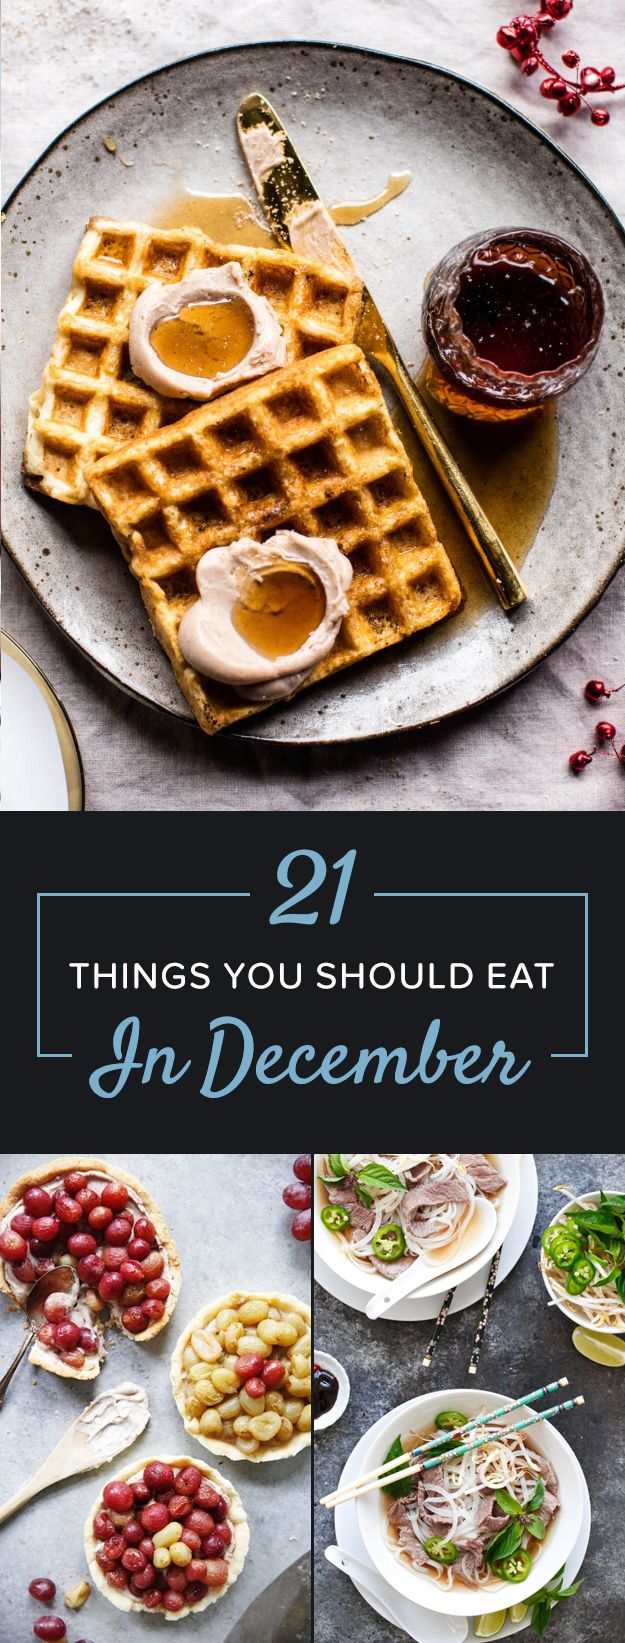 Things to cook in December